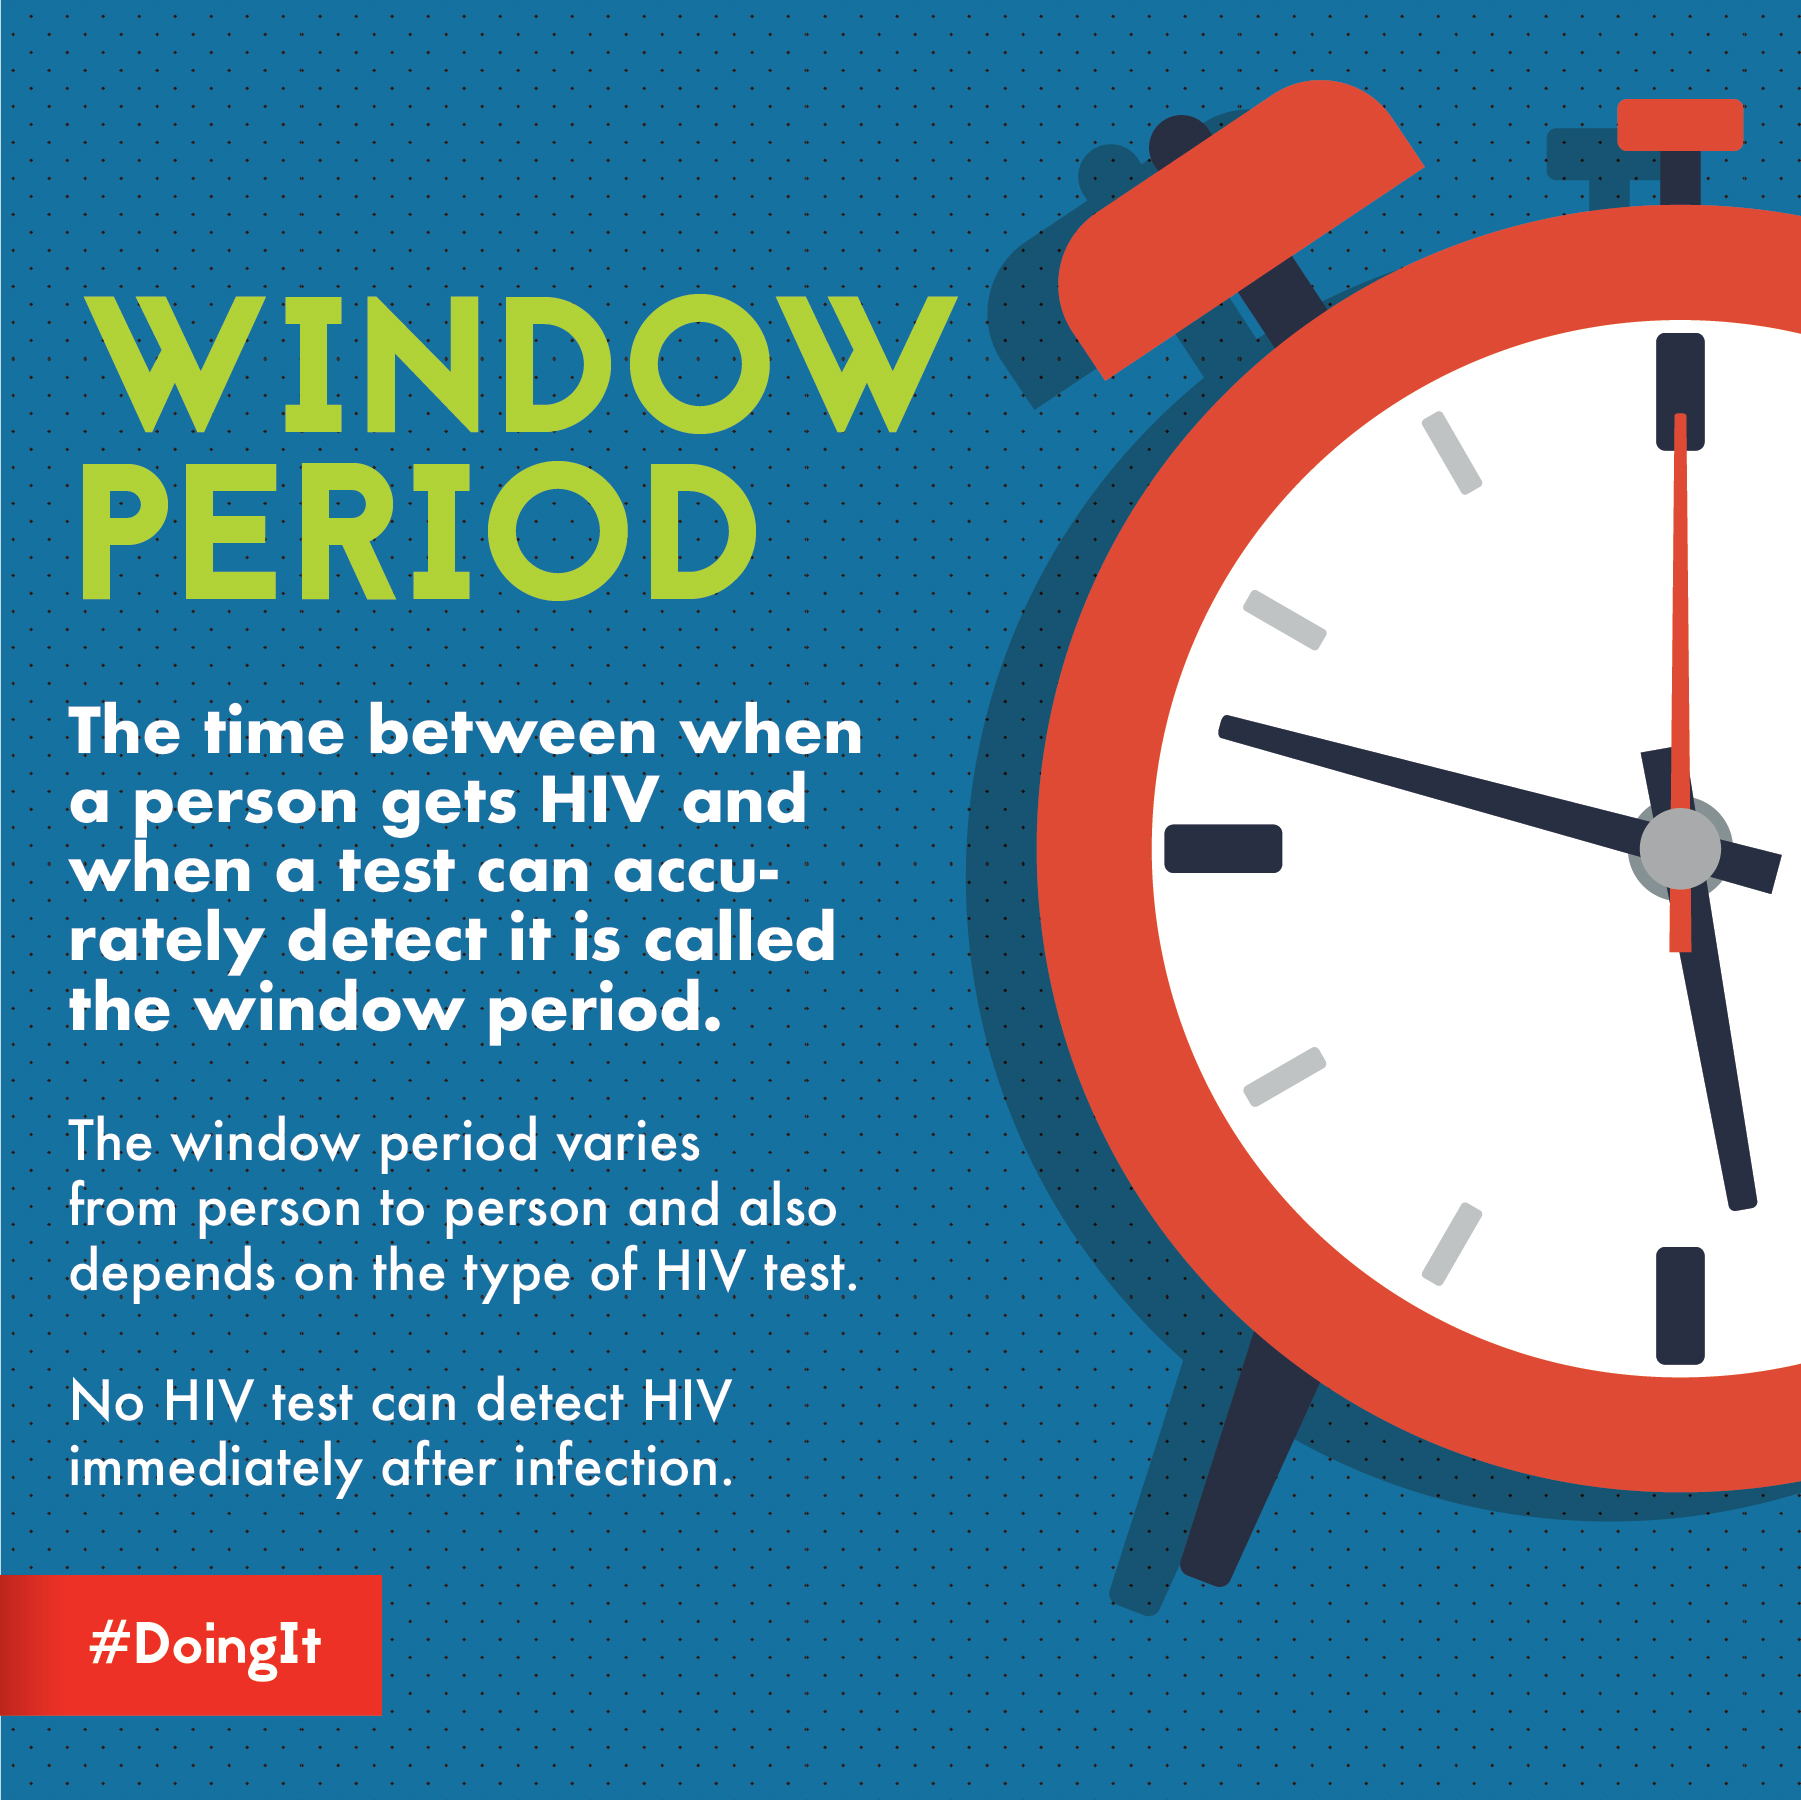 Image displays animation of a clock, along with the following text: WINDOW PERIOD The time between when a person gets HIV and when a test can accurately detect it is called the window period. The window period varies from person to person and depends on the type of HIV test. No HIV test can detect HIV immediately after infection.